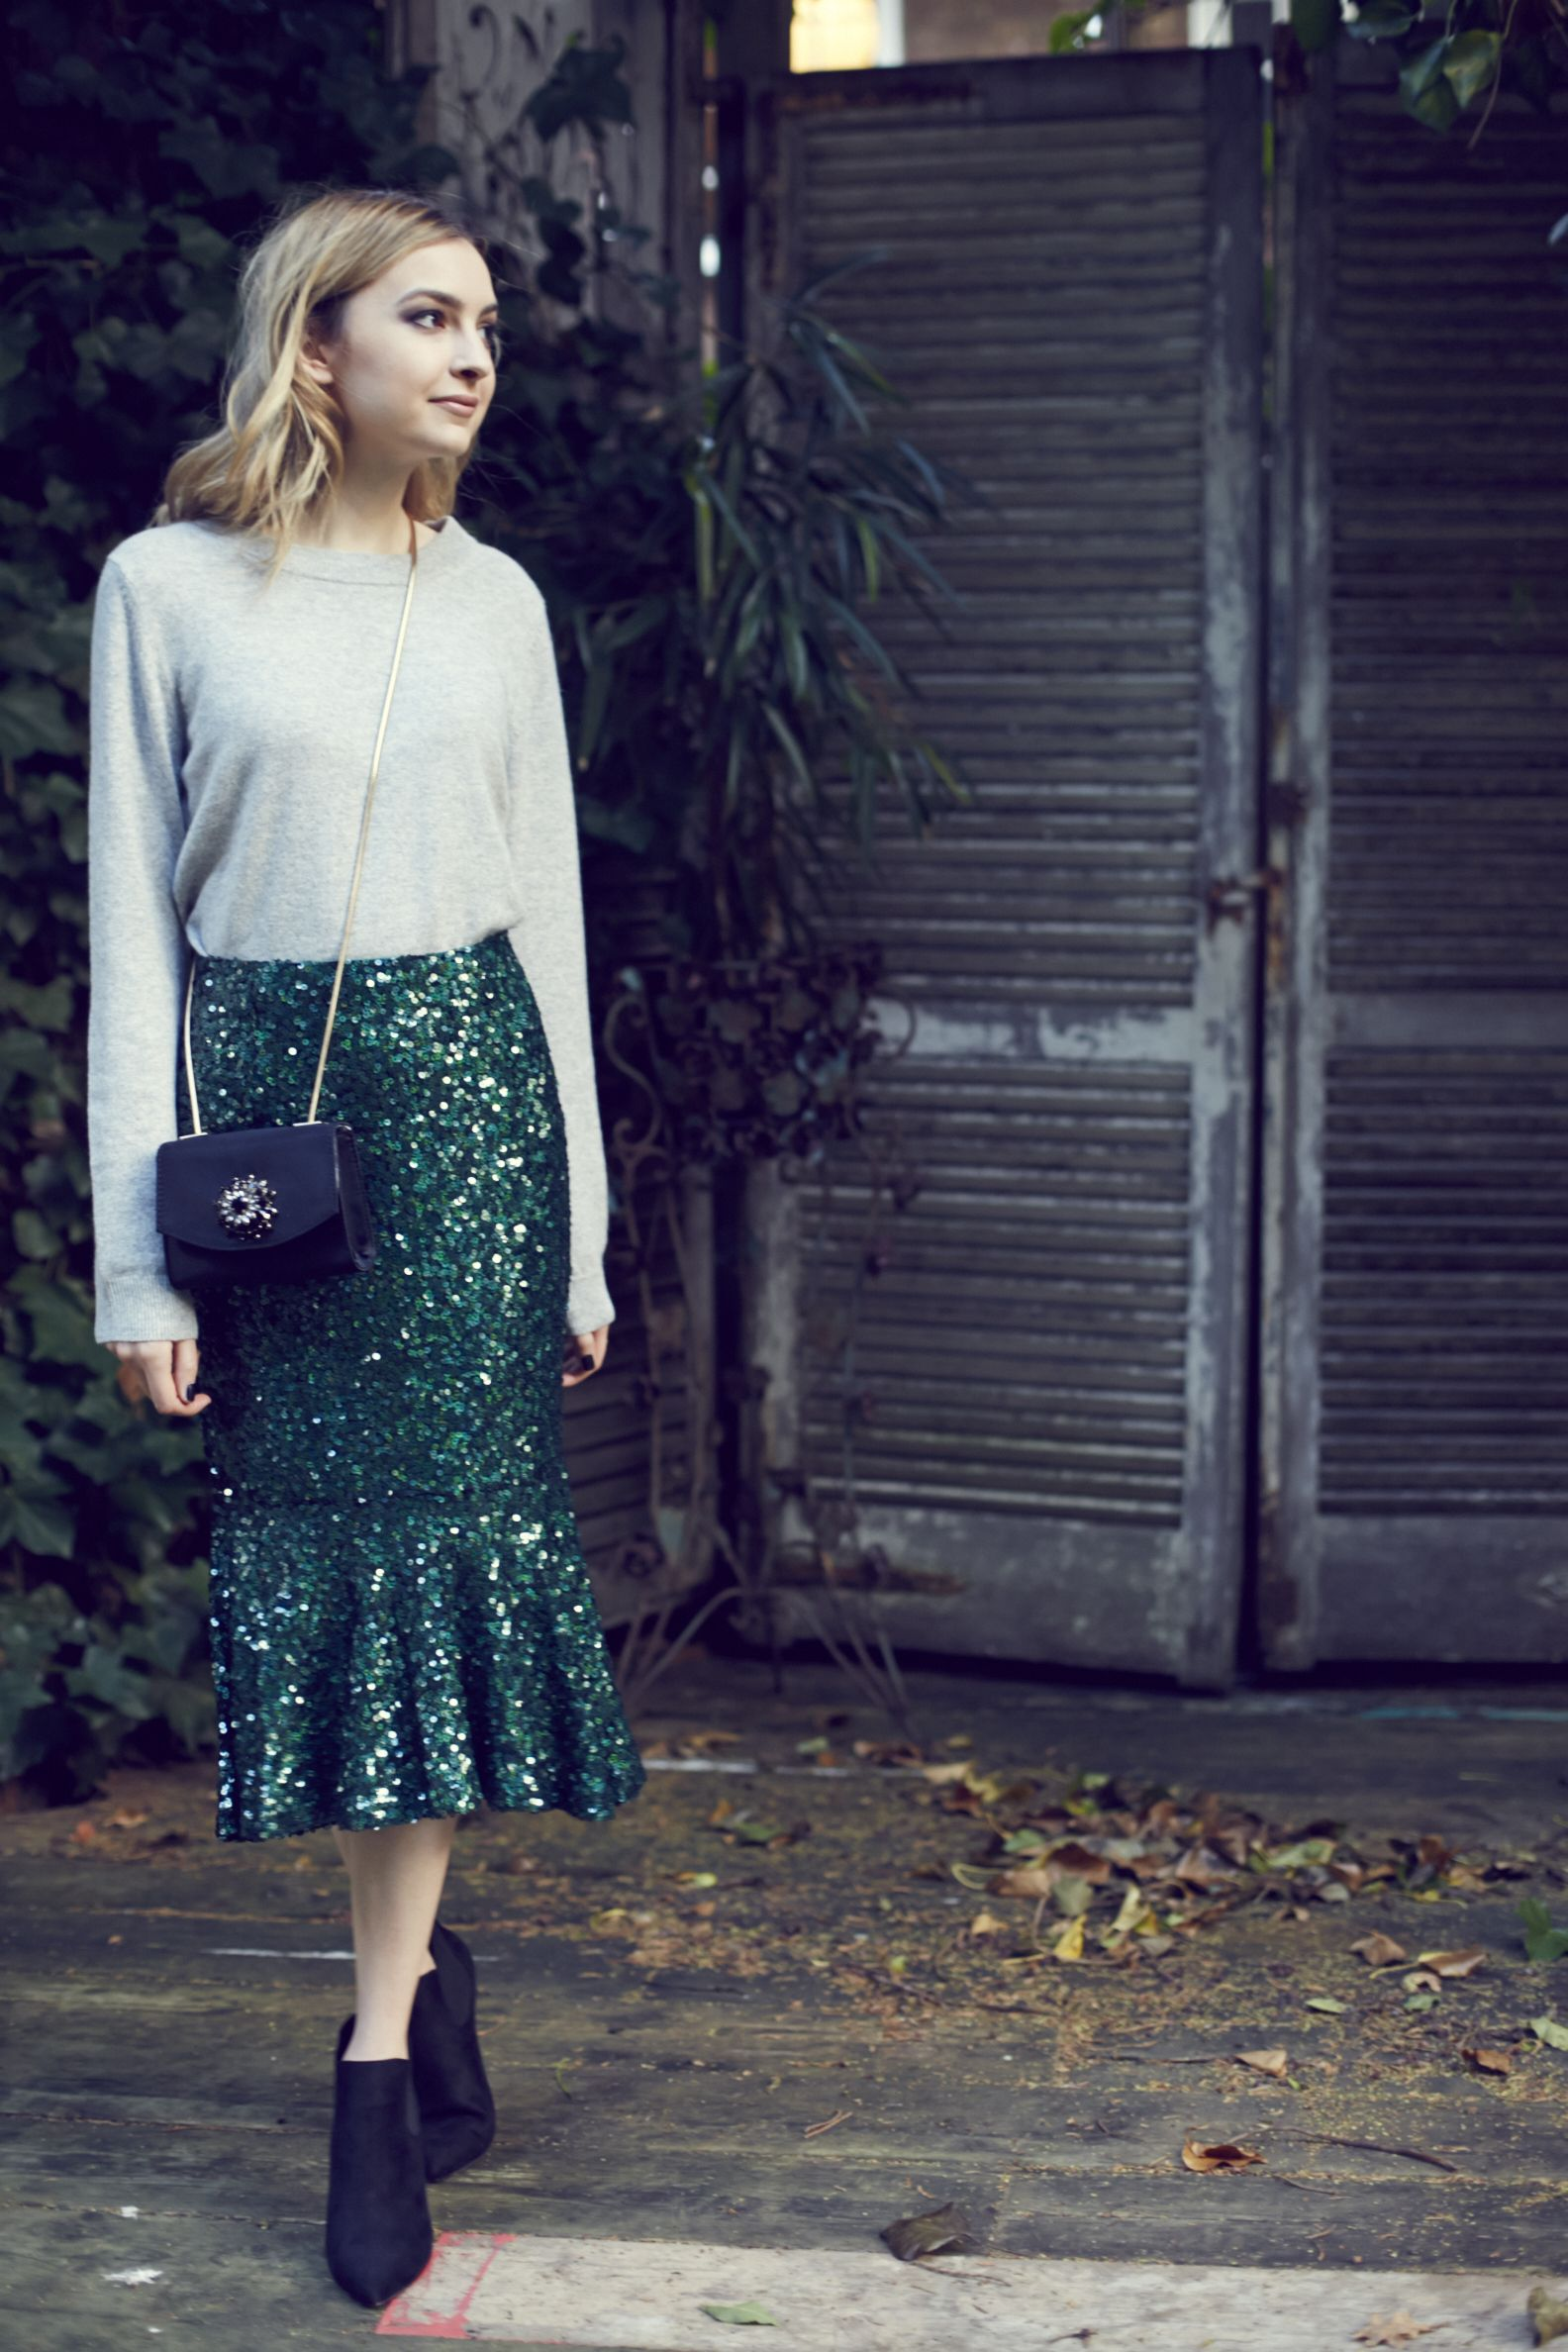 Coco's Tea Party styling a sequin mermaid skirt and grey knit... #johnlewisedit